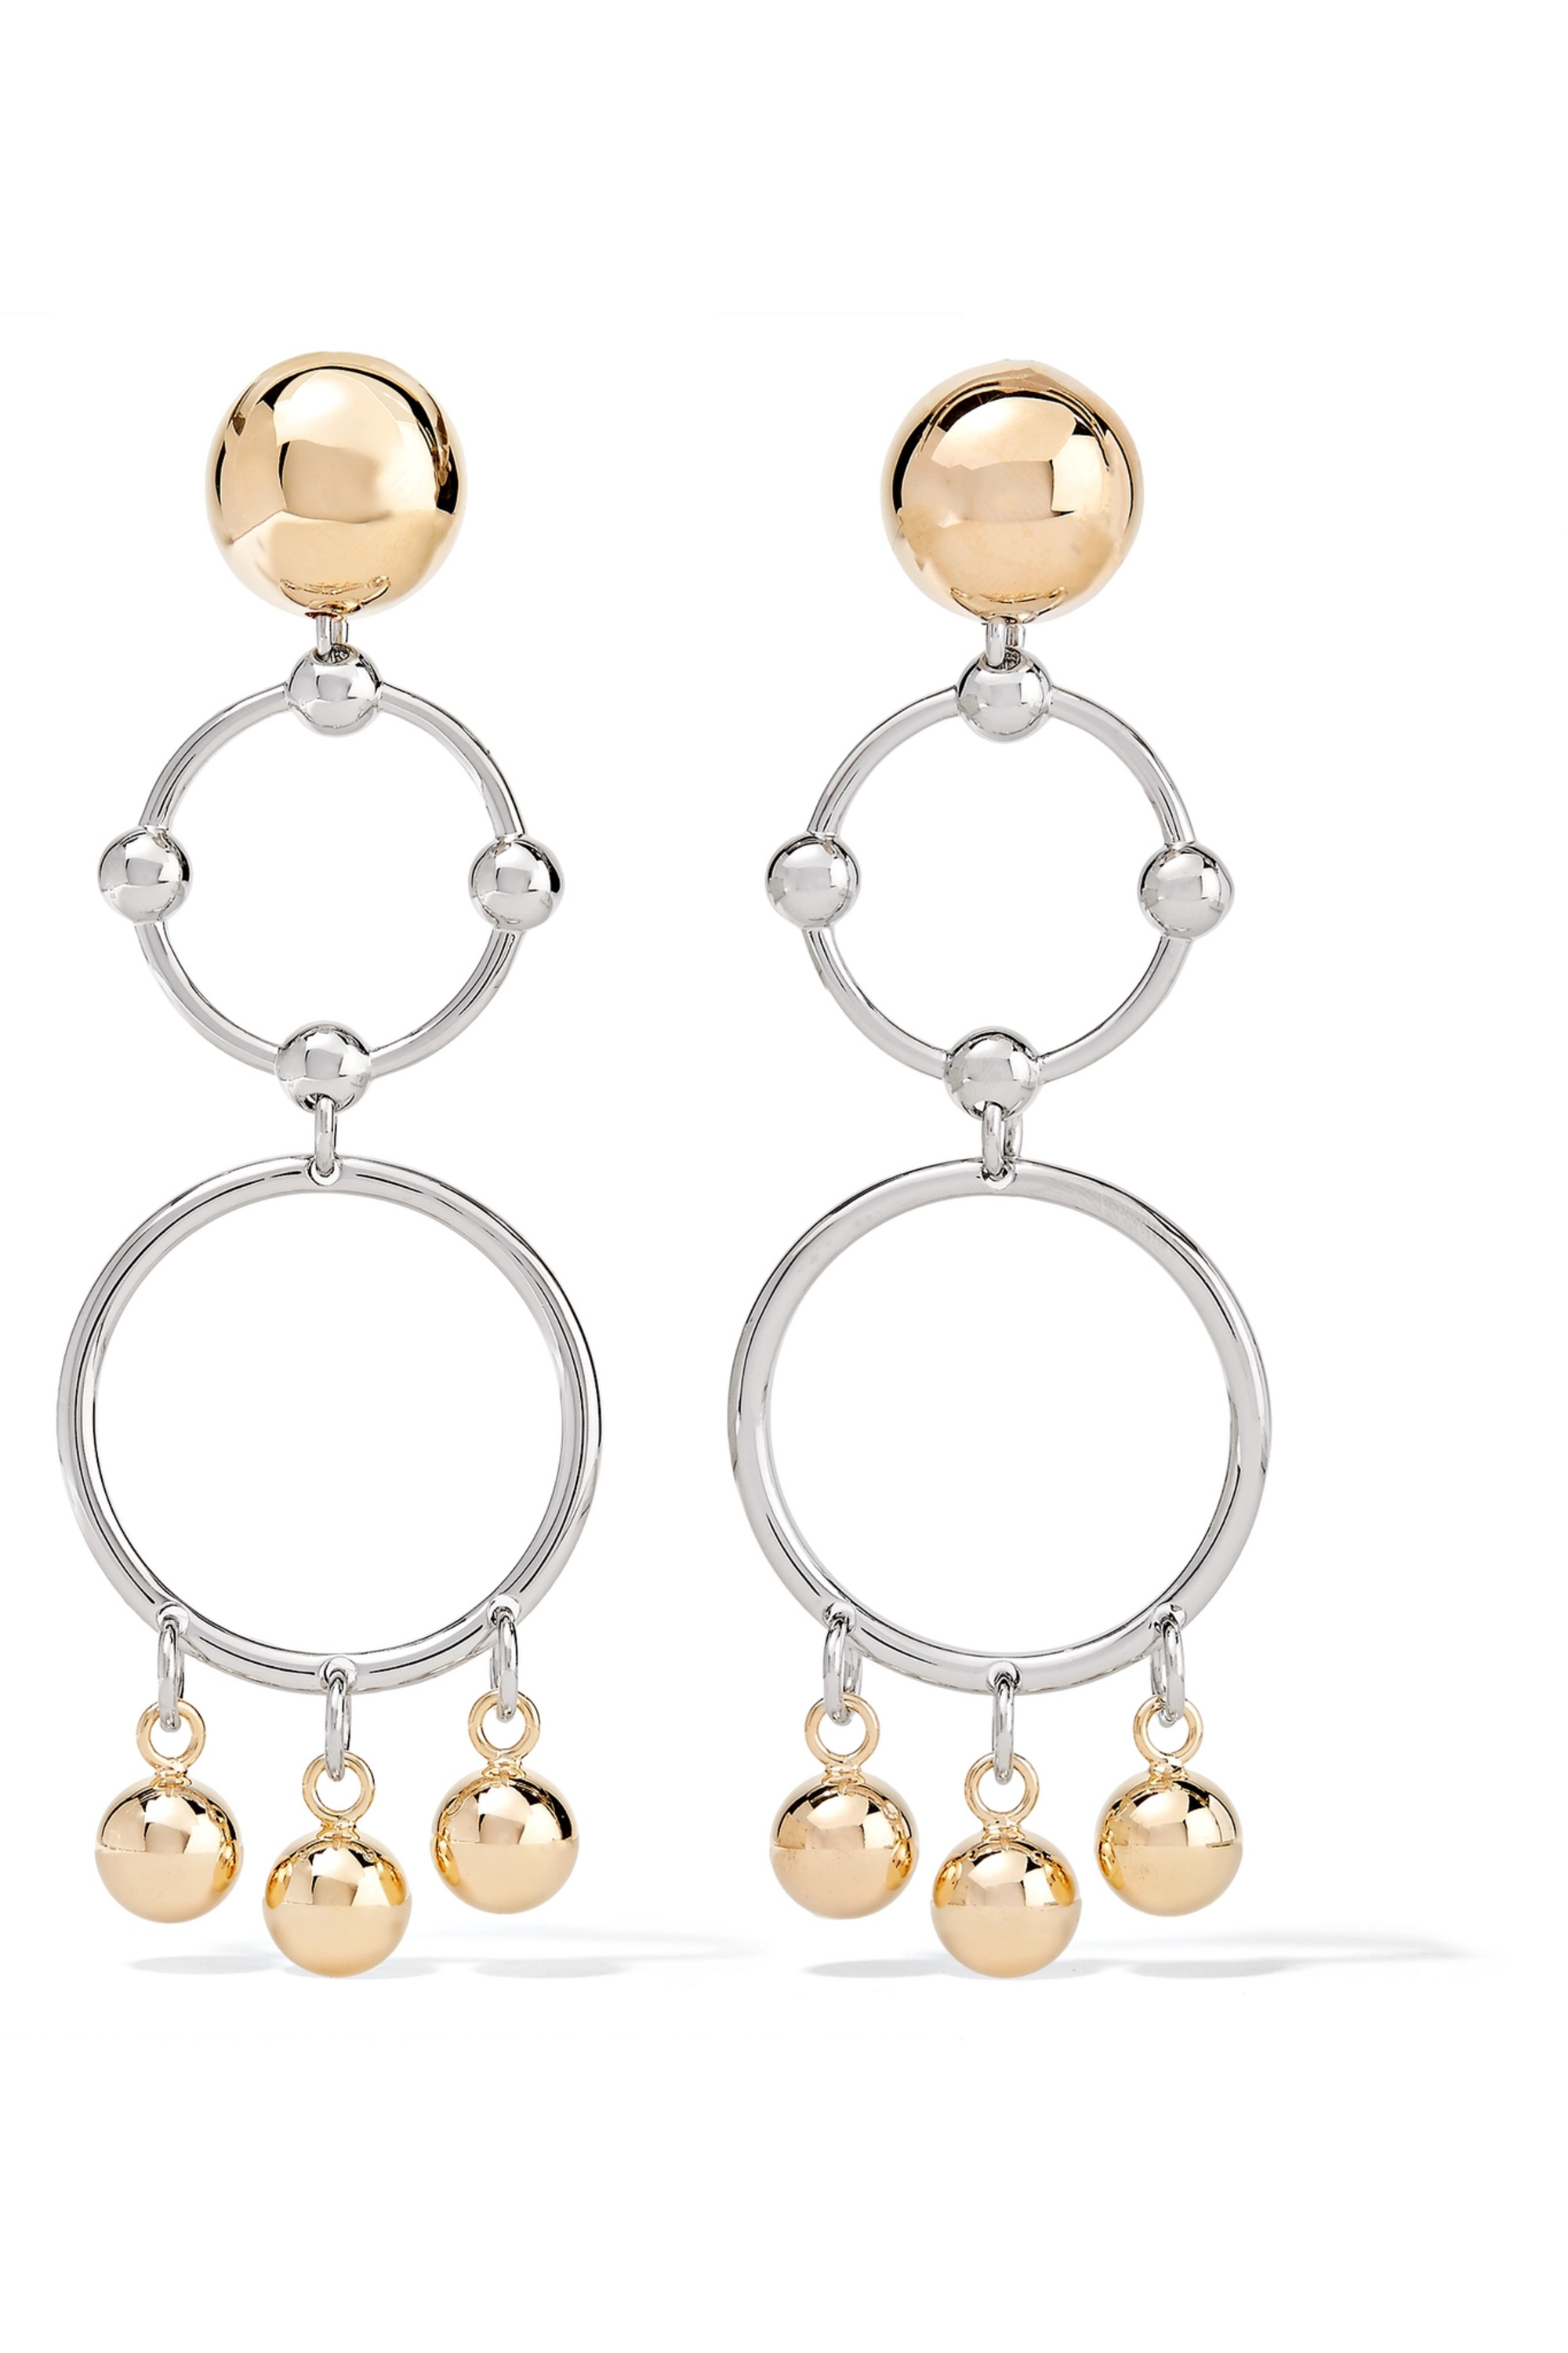 Eddie Borgo Barbell Chandelier gold and rhodium-plated earrings